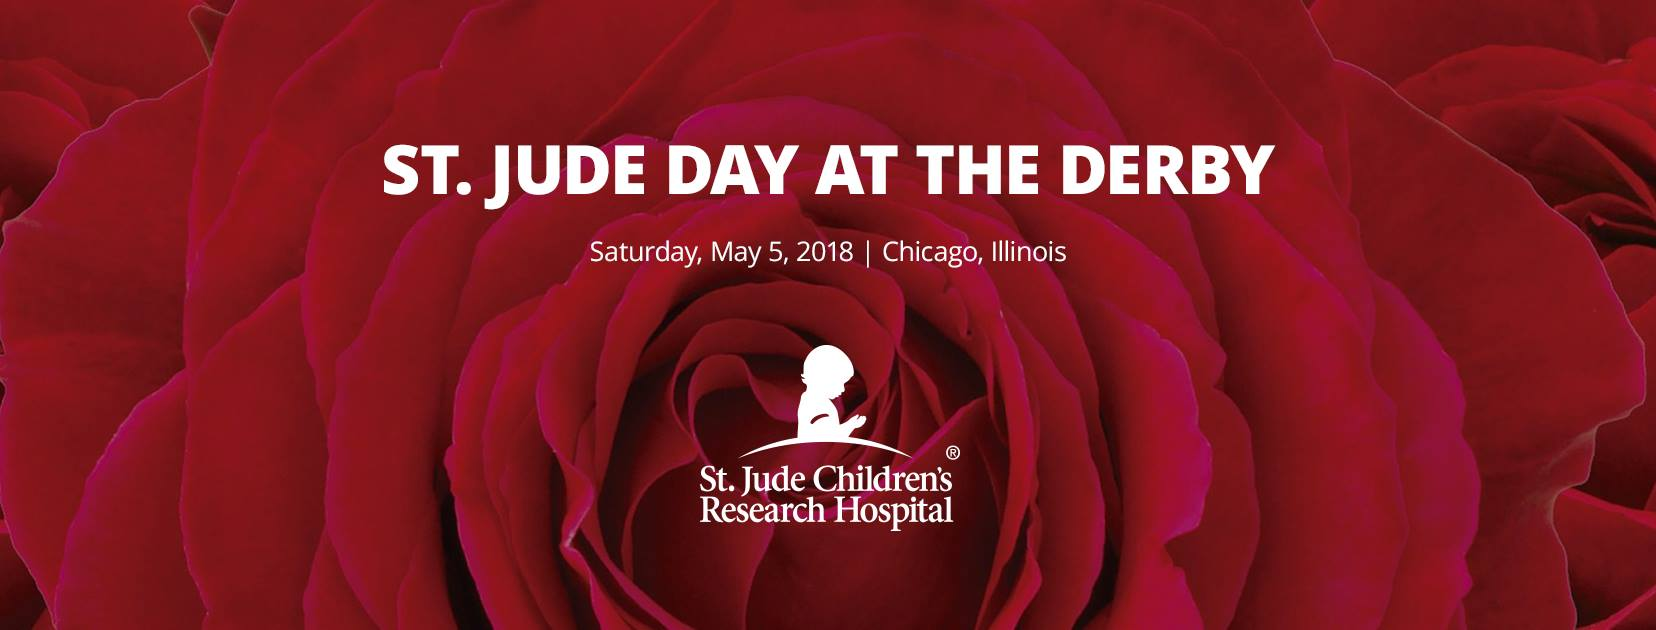 Day at the Derby - St. Jude[2].jpg